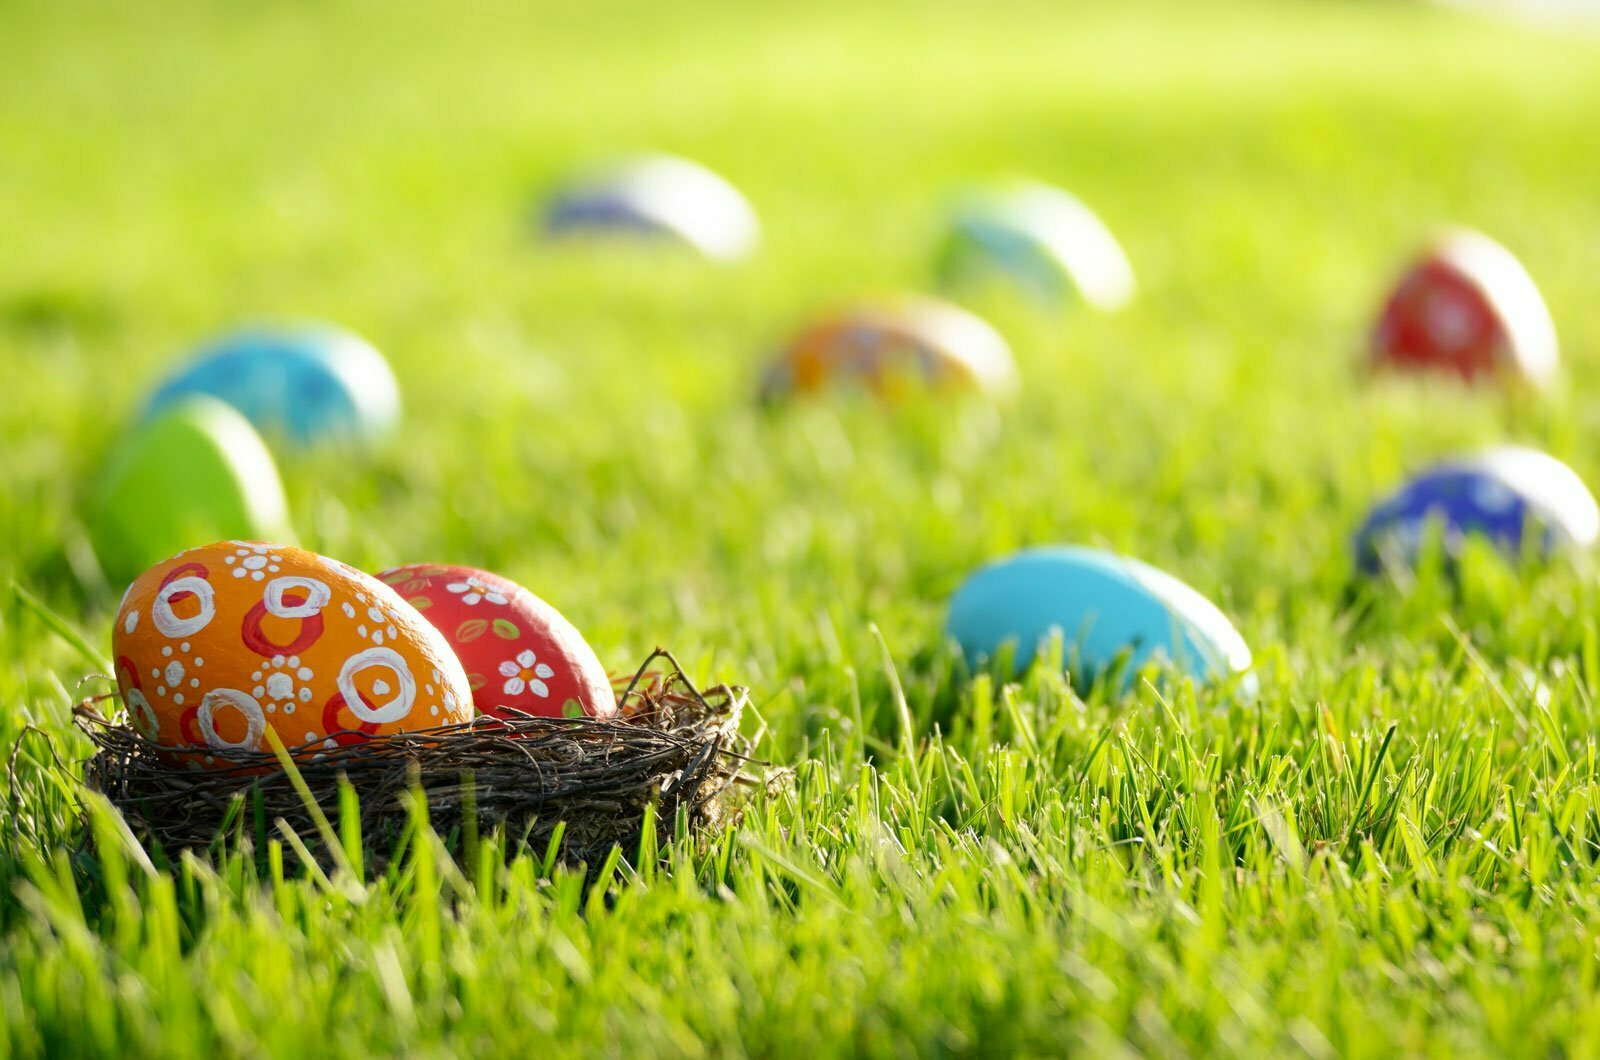 UK Lawn Care easter eggs in lawn